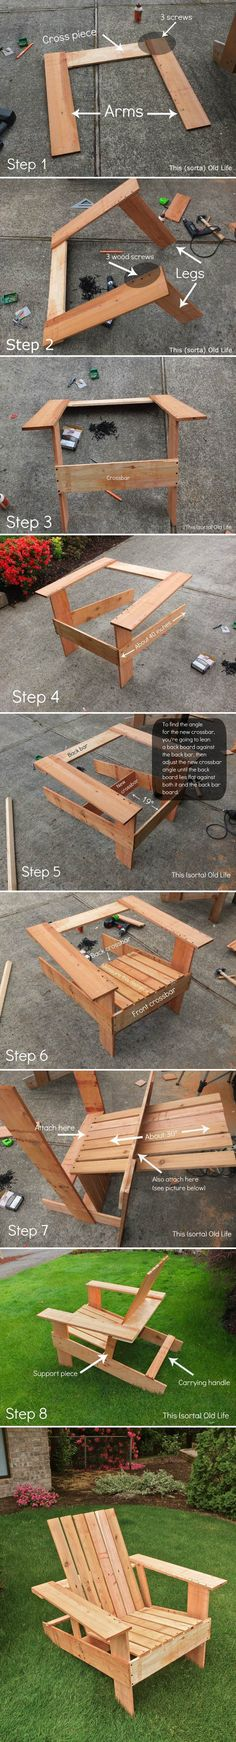 DIY Adirondack Chair Tutorial | DIY & Craft Ideas